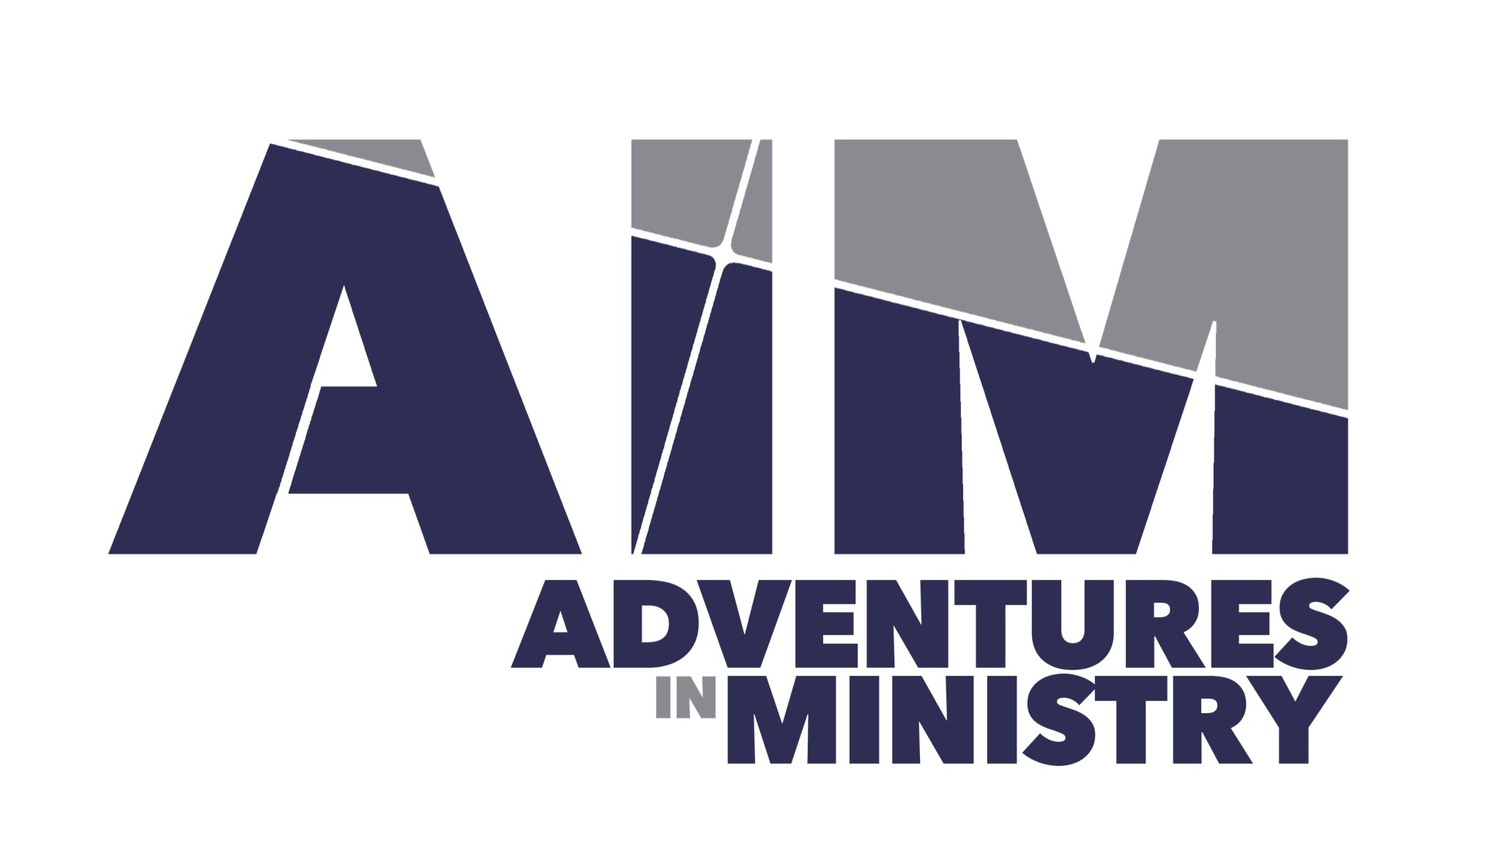 Adventures In Ministry